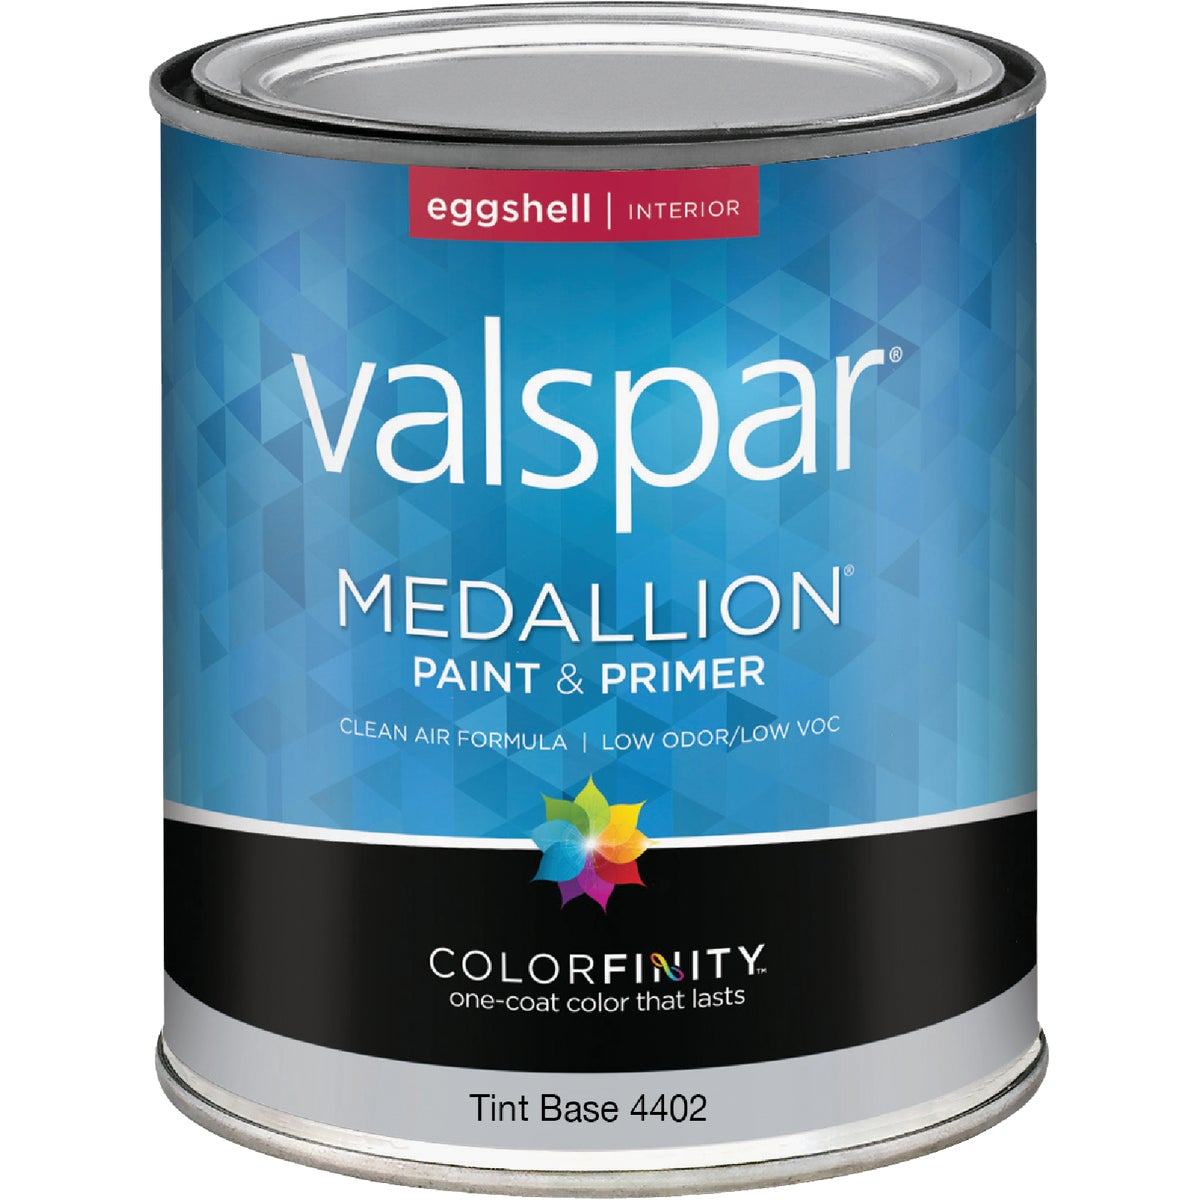 INT EGG TINT BS PAINT - 027.0004402.005 by Valspar Corp